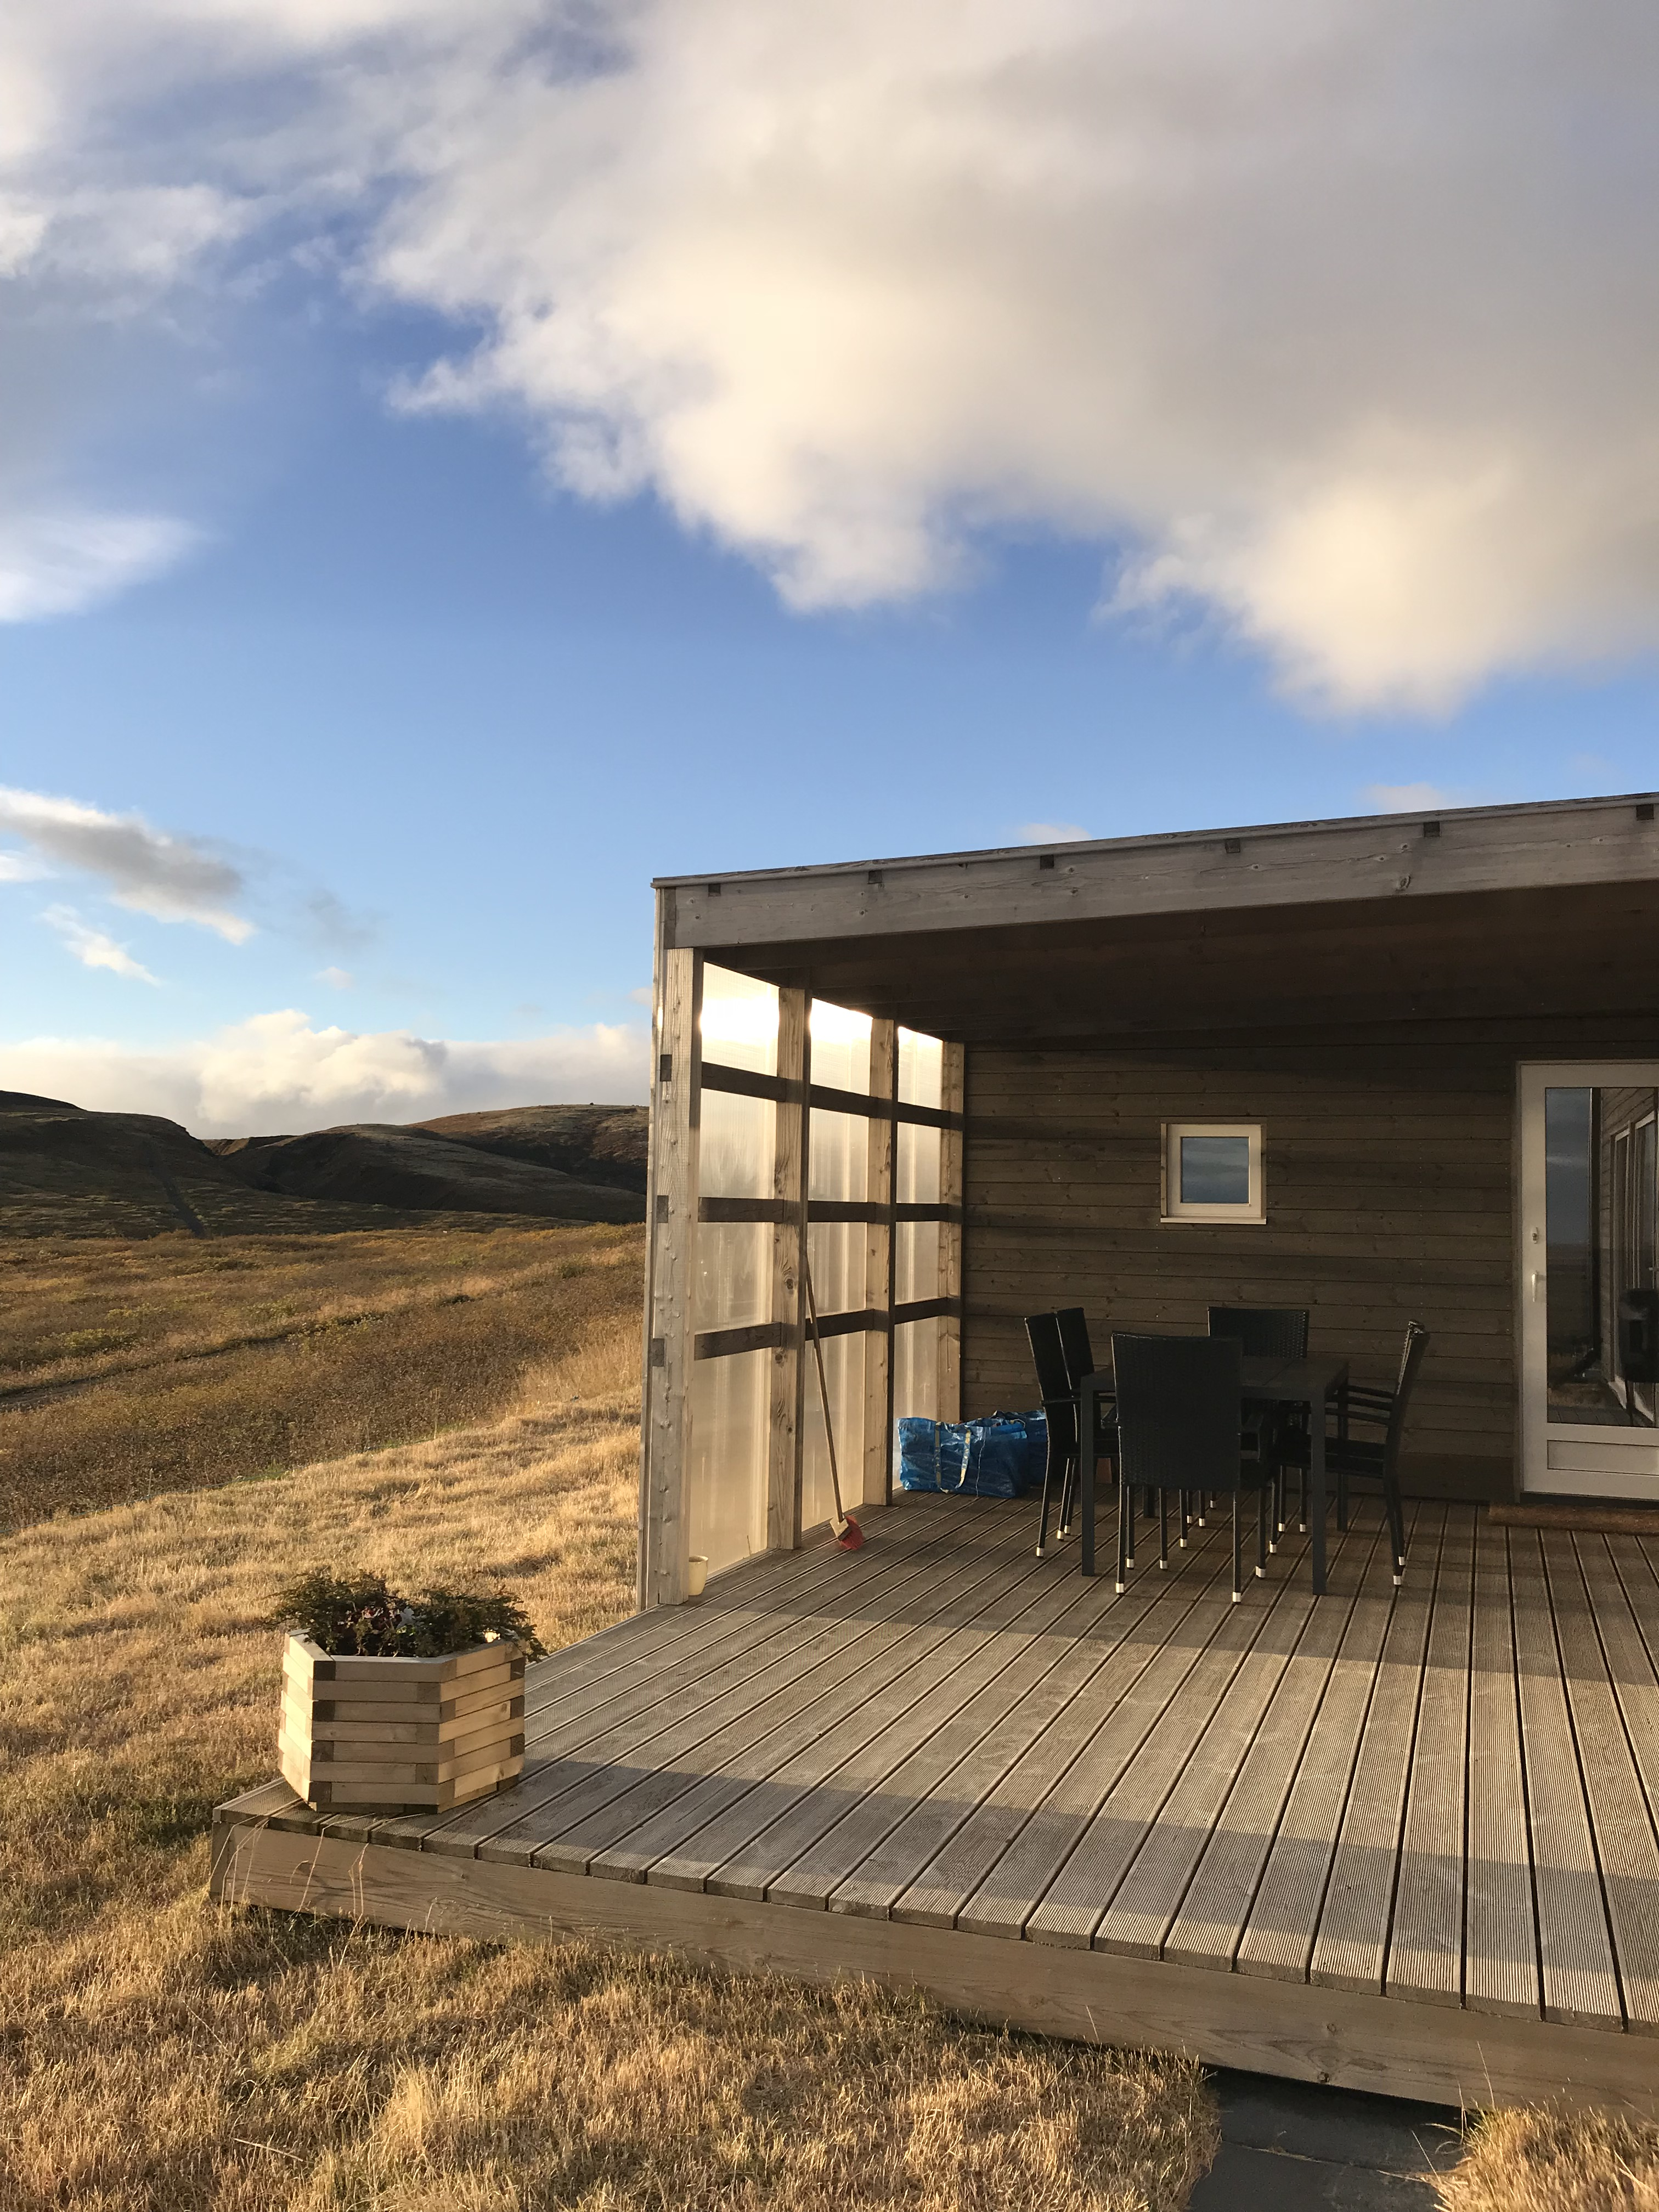 3 Days In Southeast Iceland - Vik Iceland - Iceland Itinerary - Planning A Trip To Iceland - Must See In Iceland - Iceland Travel Blog - What to see In Vik - Glacier Lagoon - Skogafoss Waterfall - Diamond Beach - Black Sand Beach - Glacier - Iceland Trip - Communikait by Kait Hanson #iceland #vik #travel